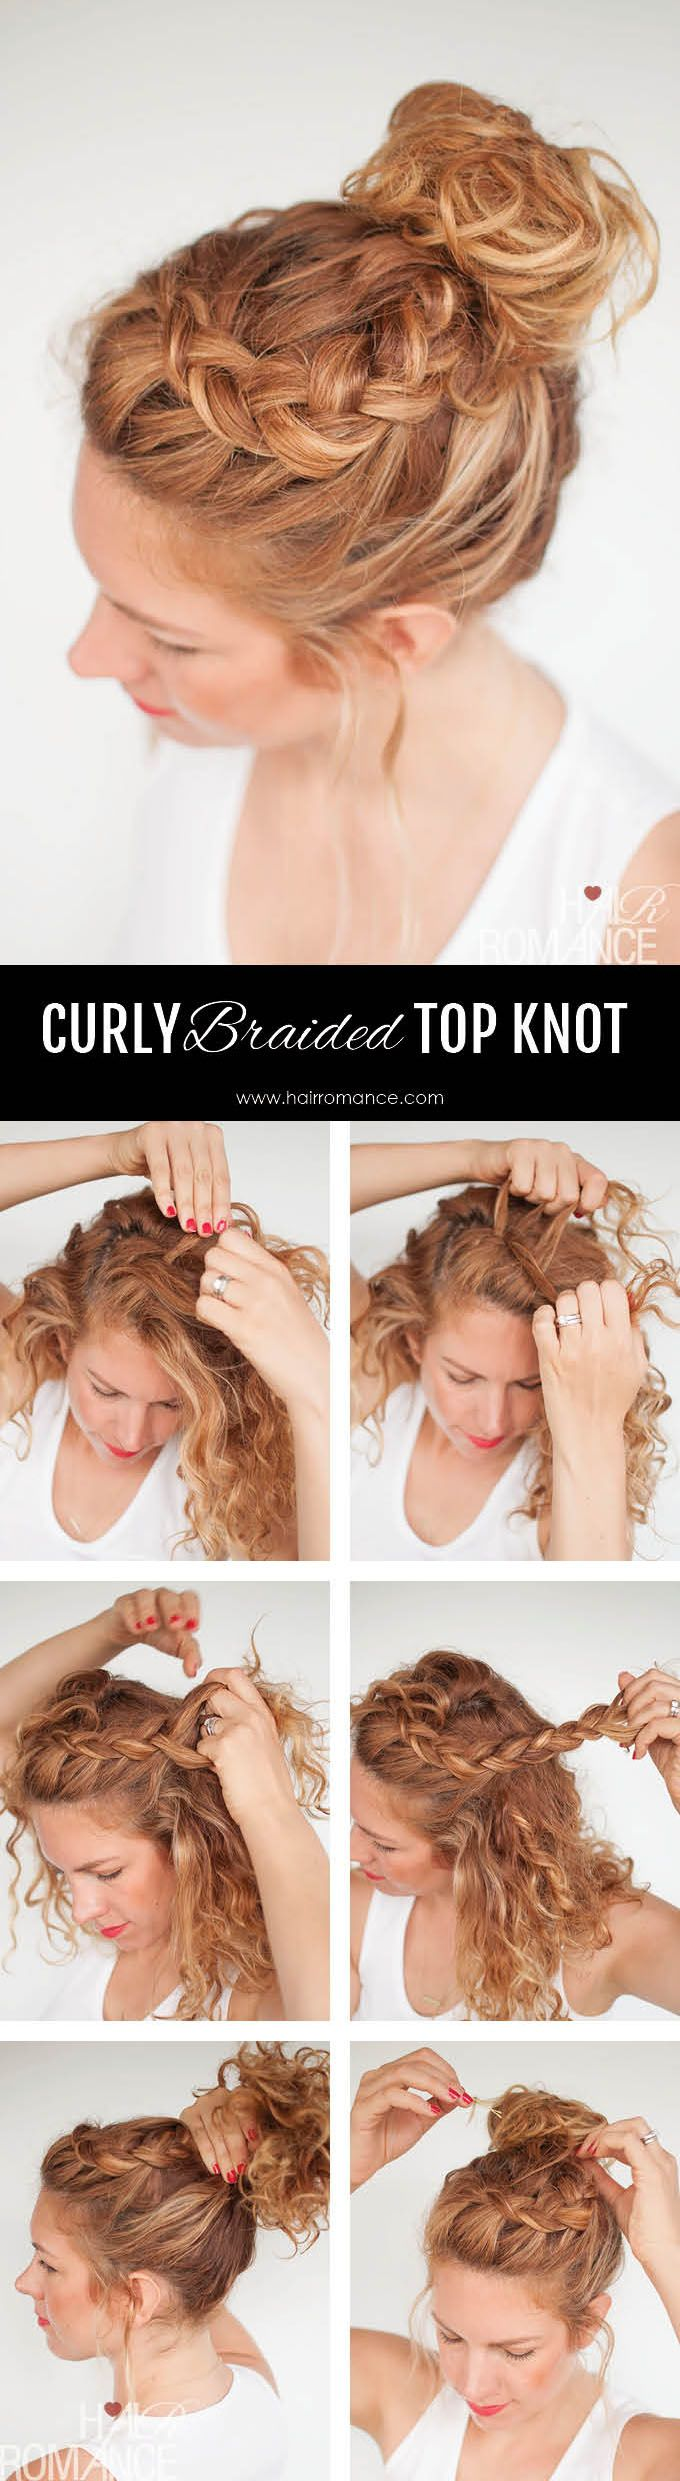 Surprising 1000 Ideas About Curly Hairstyles On Pinterest Hairstyles Hairstyles For Women Draintrainus